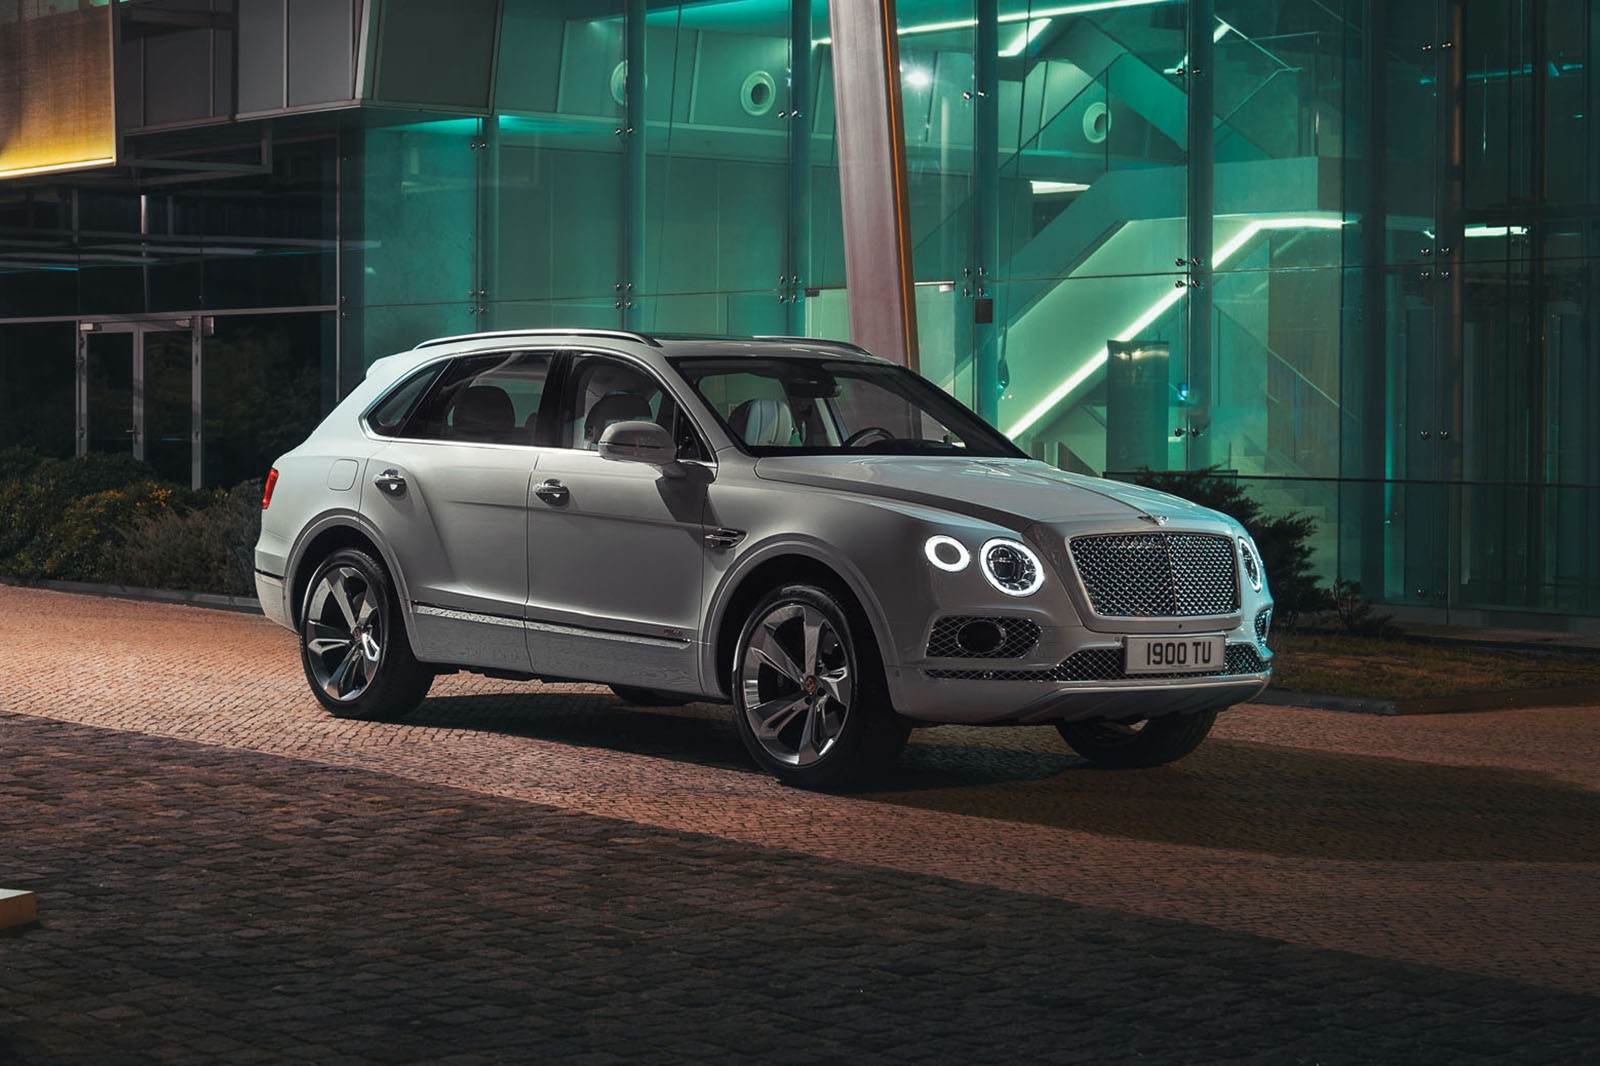 Different Suv Models >> 2019 Bentley Bentayga Plug-in Hybrid Leaked Hours Before Its Official Release - autoevolution